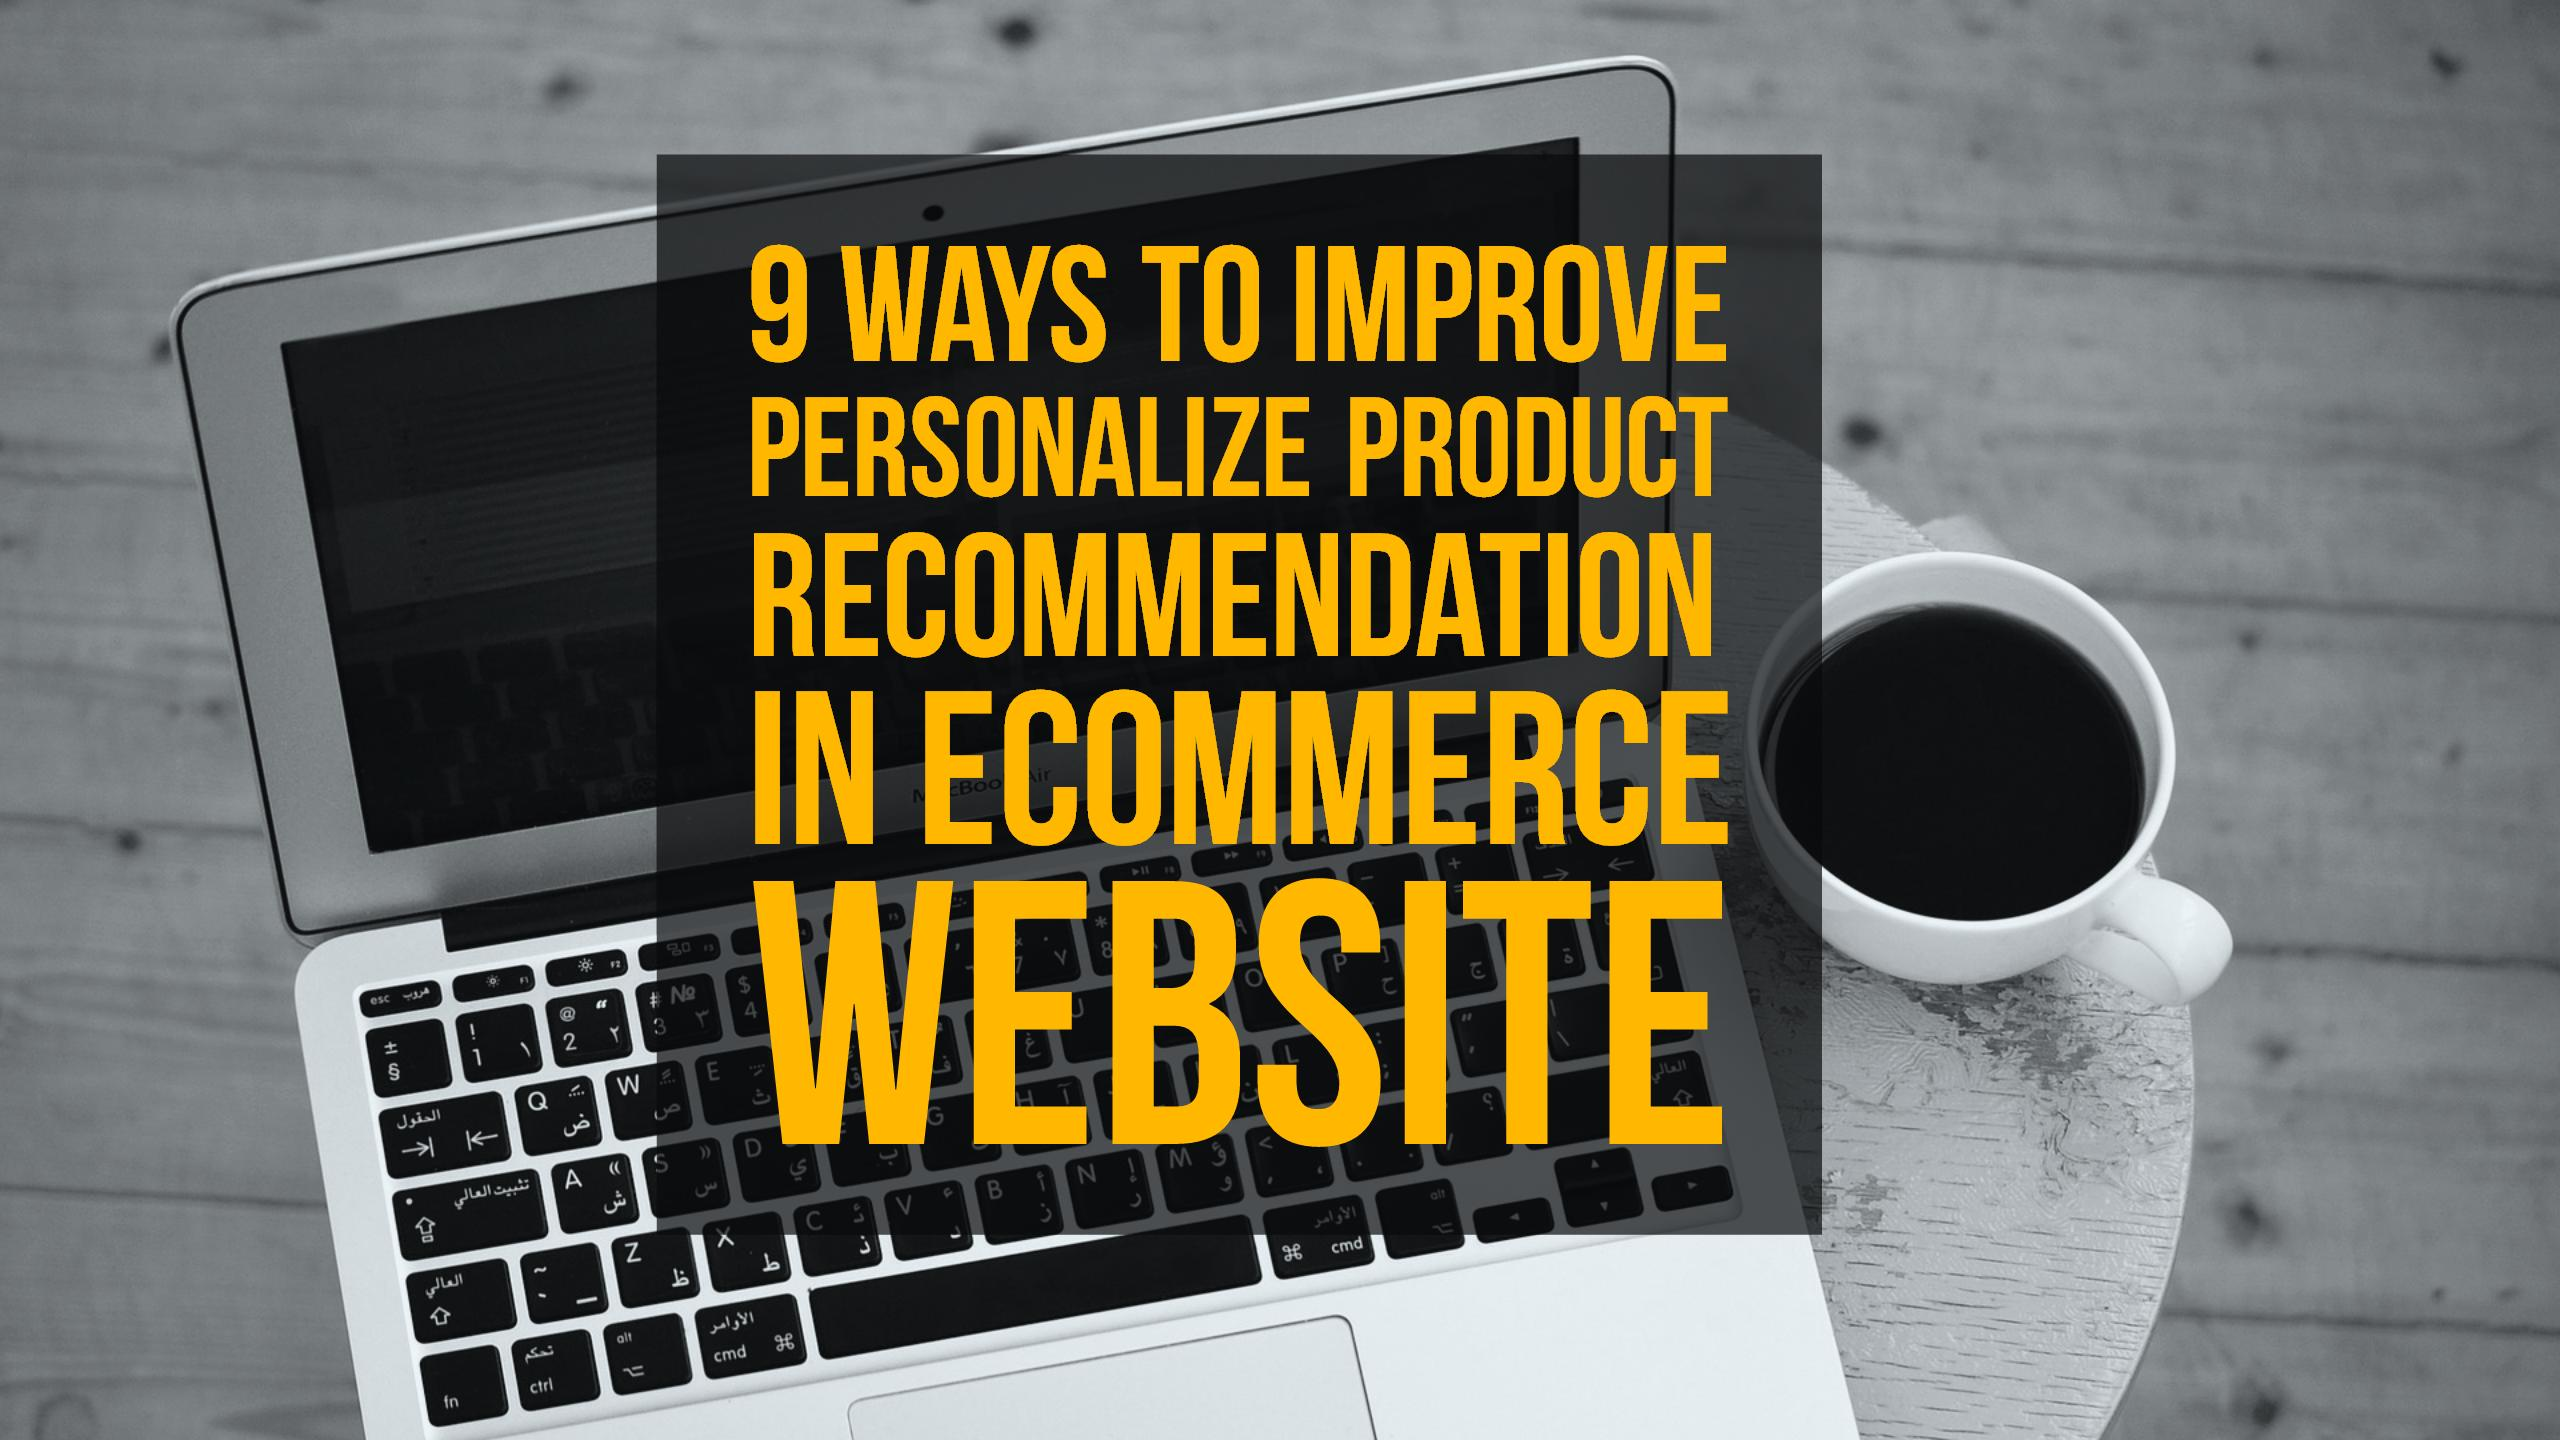 9 Ways to Improve Personalized Product Recommendation in eCommerce Website